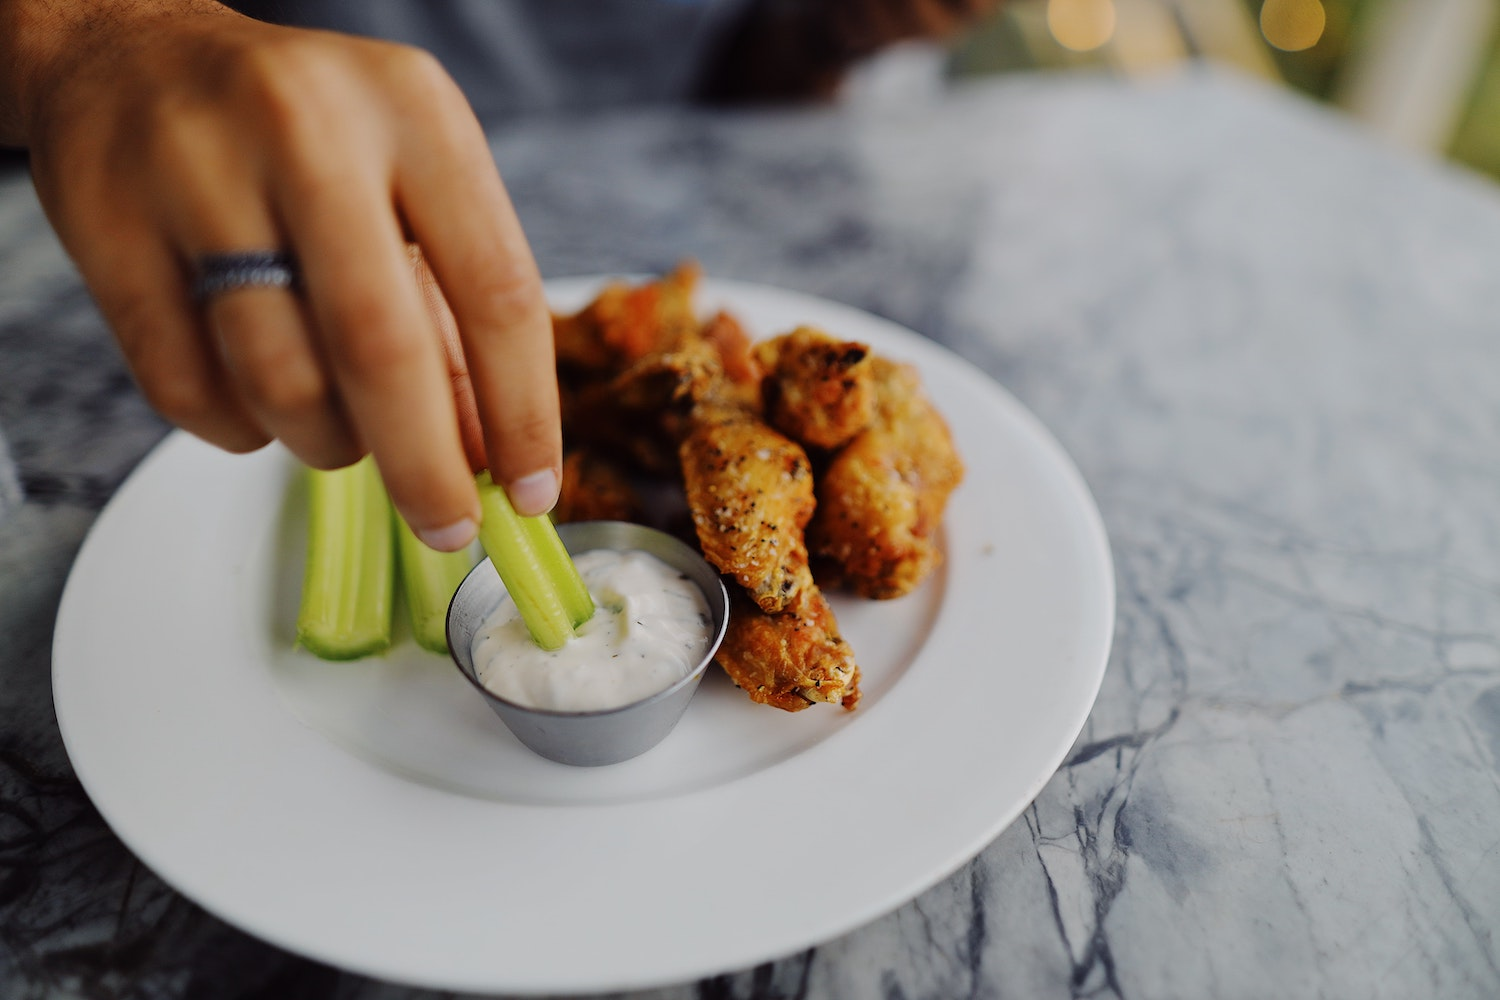 how to cook chicken wings (Credit: Pexels)